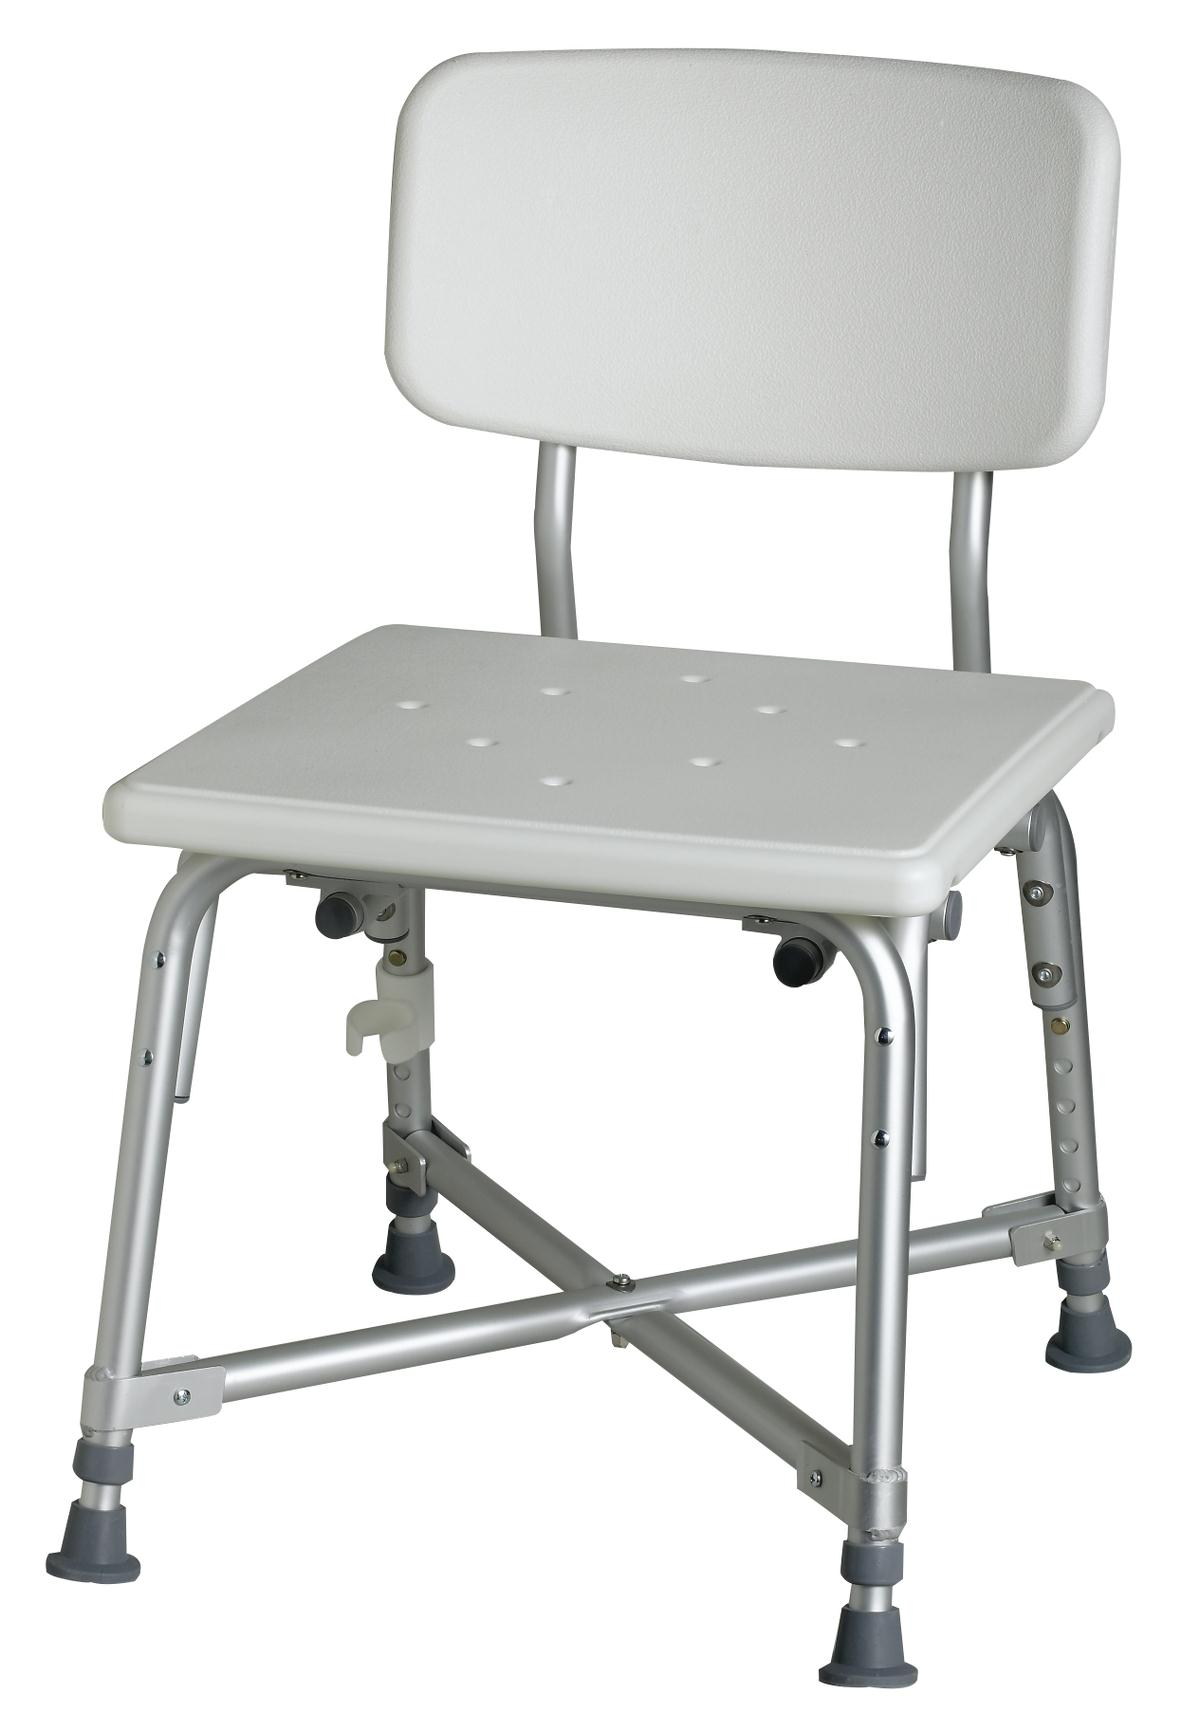 Bariatric Aluminum Bath Bench with Back - Careway Wellness Center